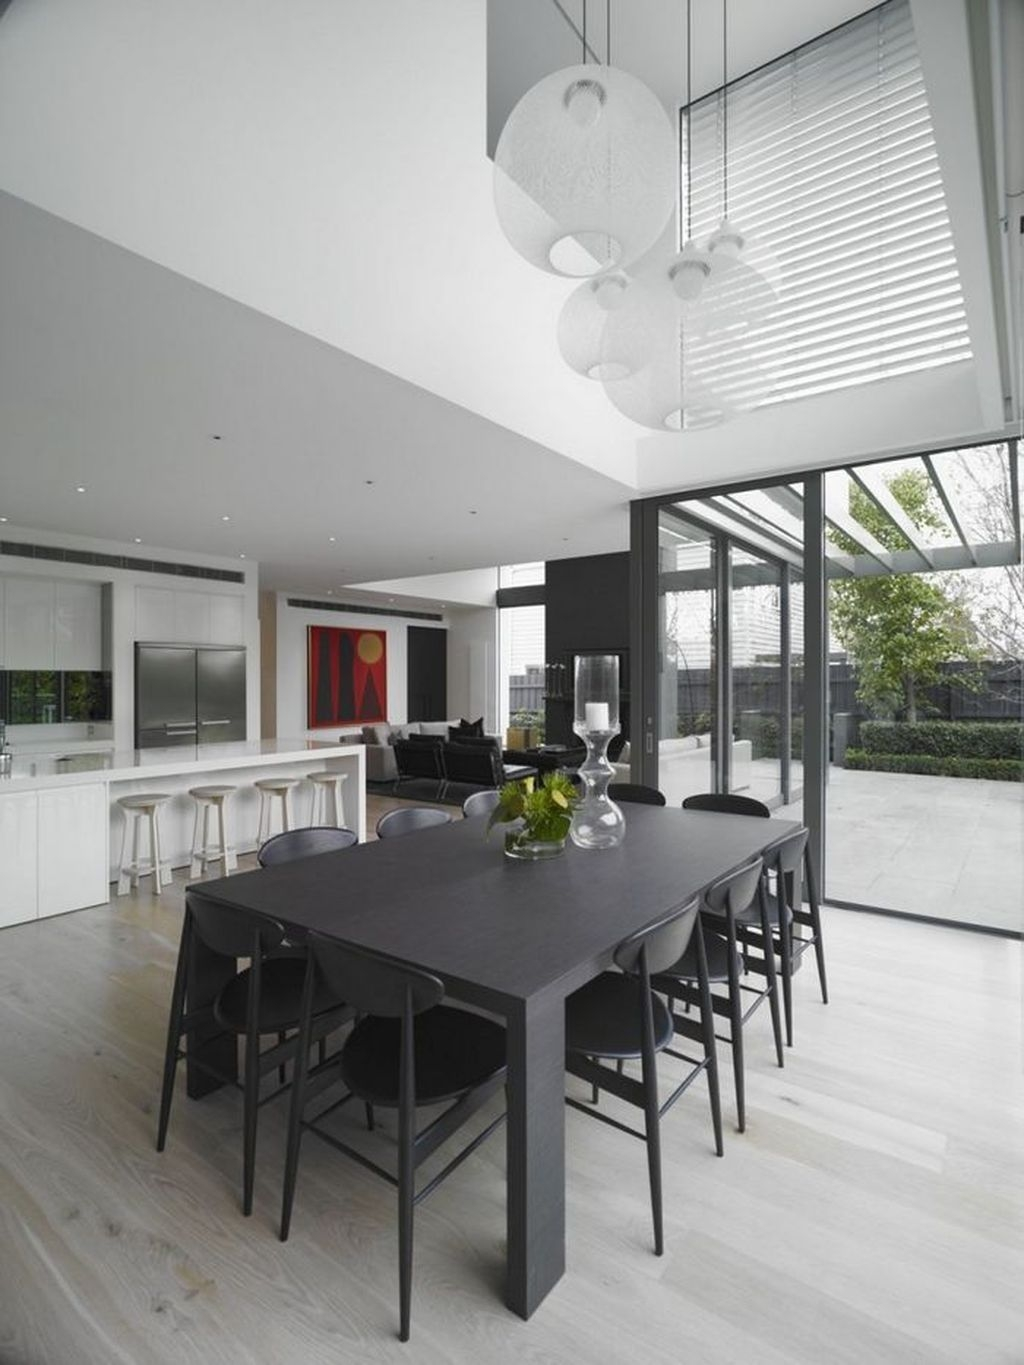 Best Minimalist Dining Room Design Ideas For Dinner With Your Family32